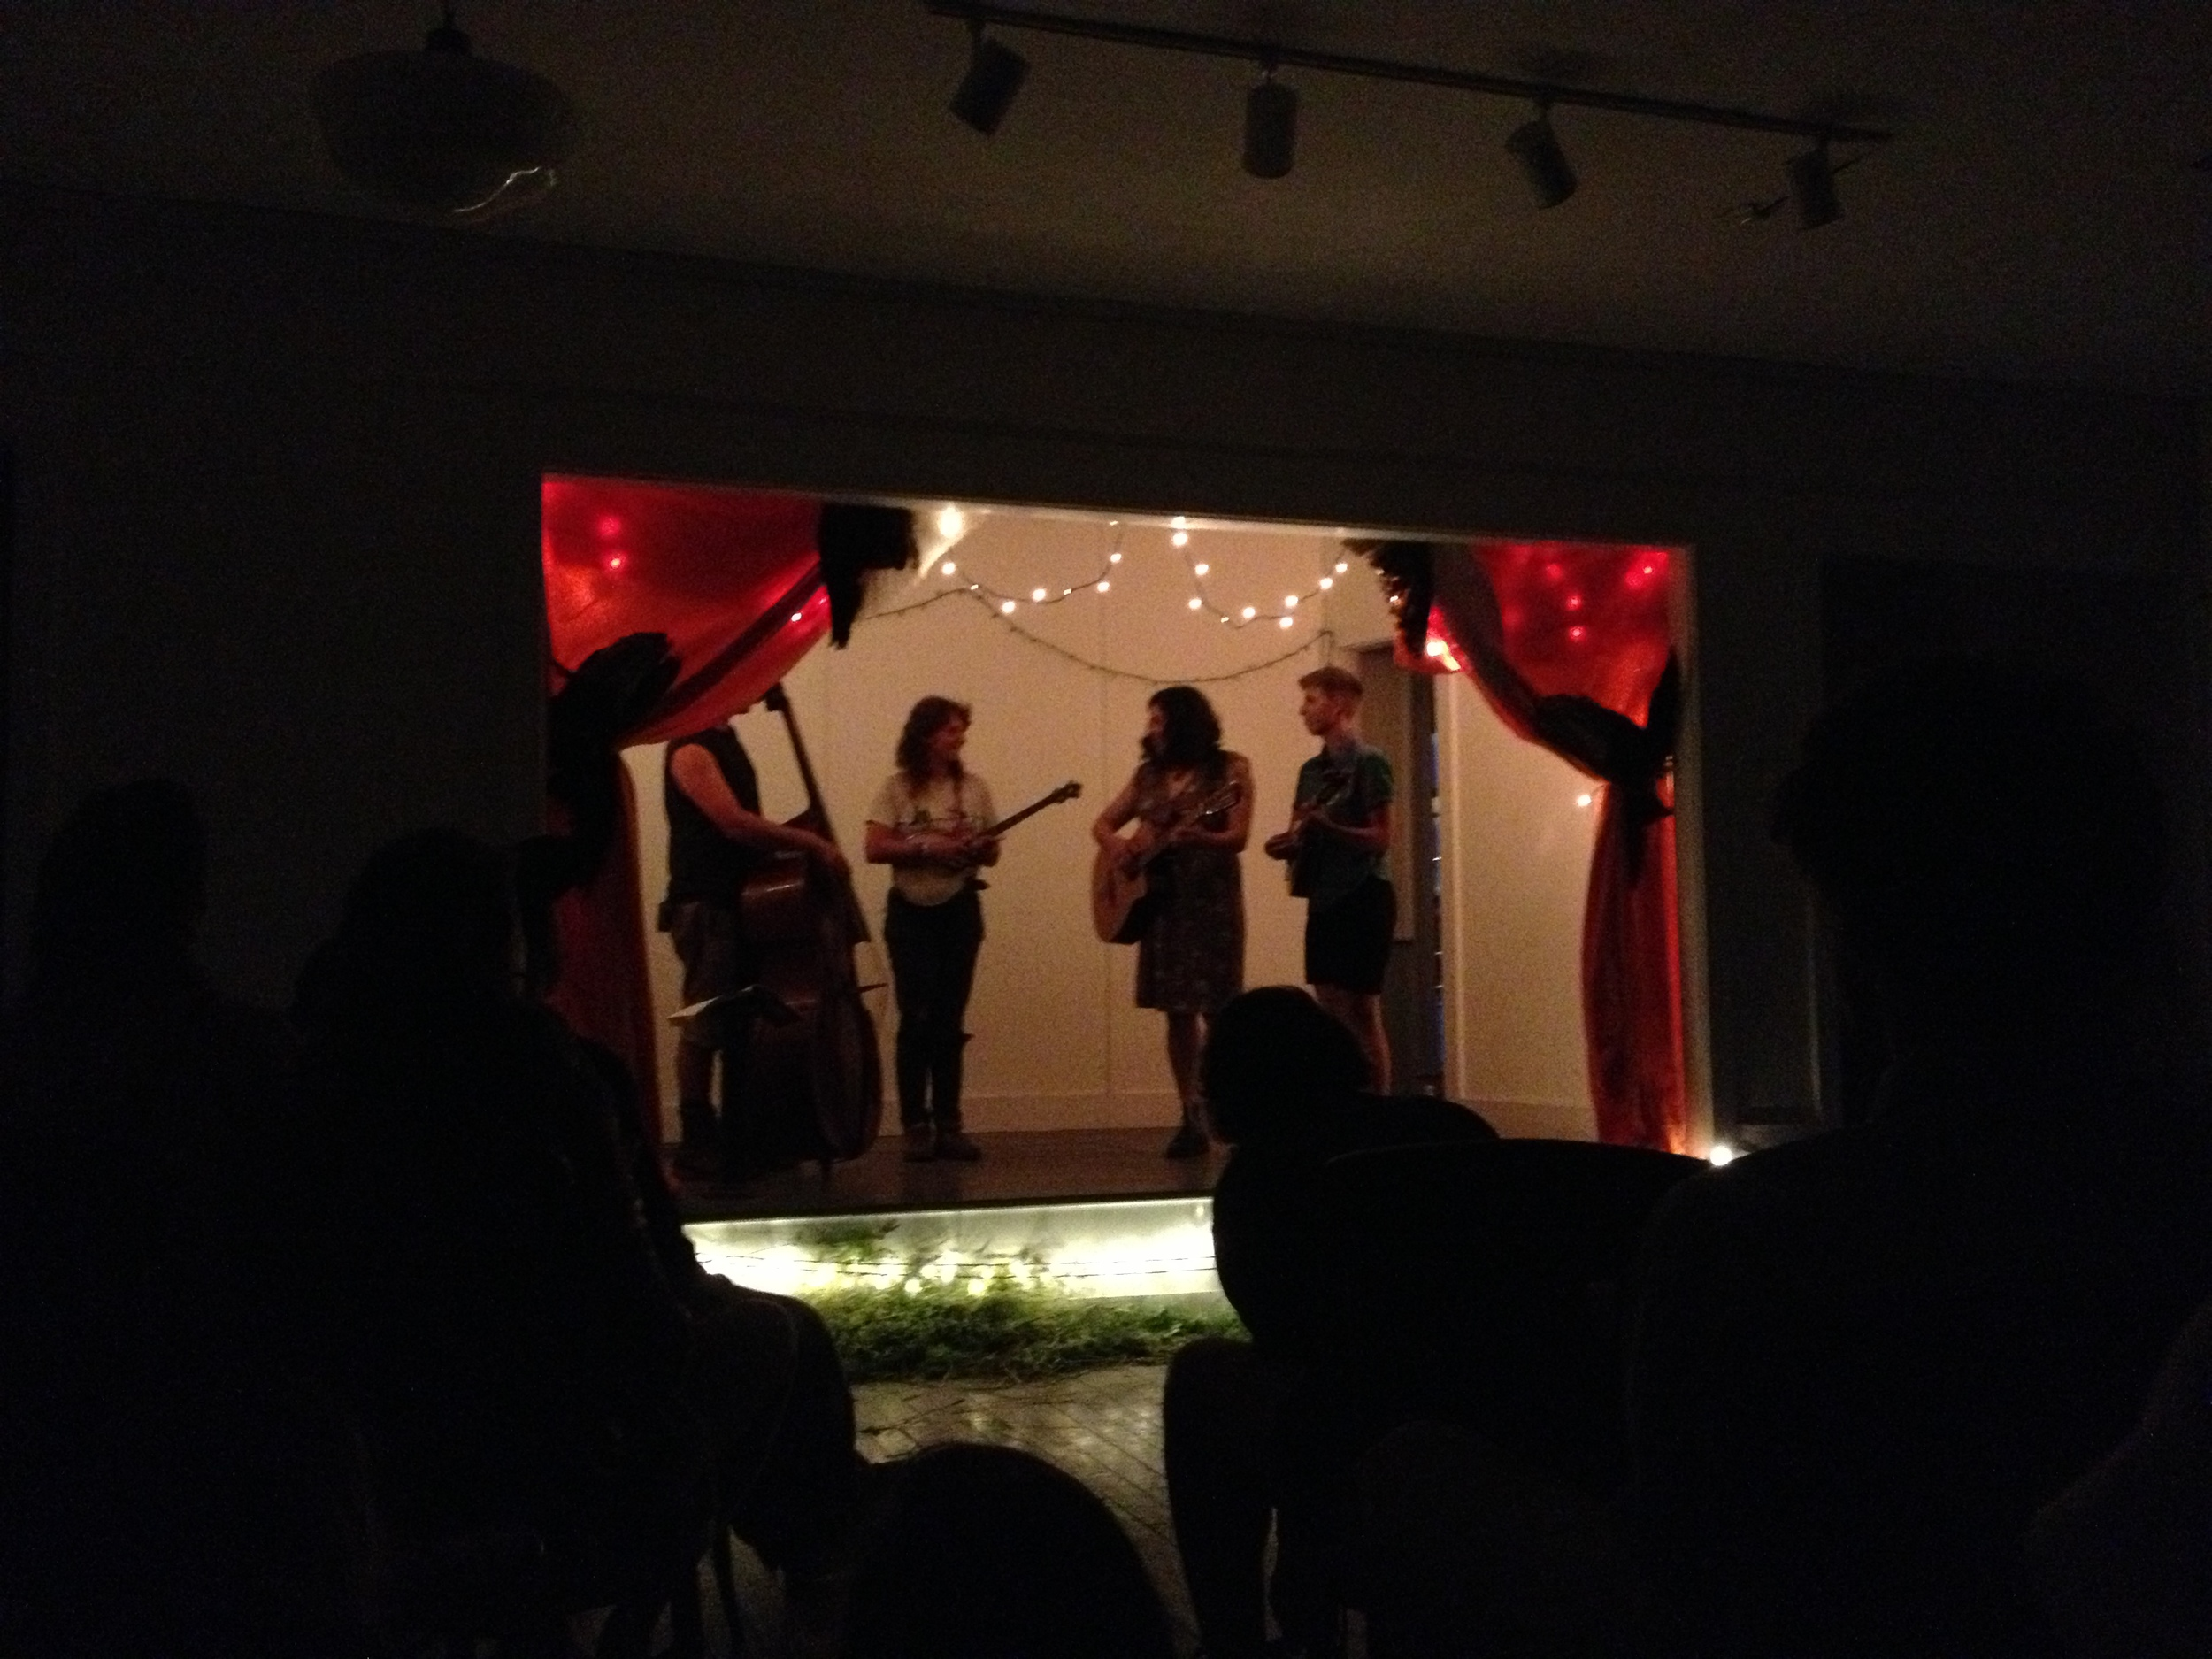 After dinner, we went back upstairs for some great farm-inspired spoken word from Tess, followed by some great old-timey string band music from  Pocatello , full of farmers from the Hudson Valley.